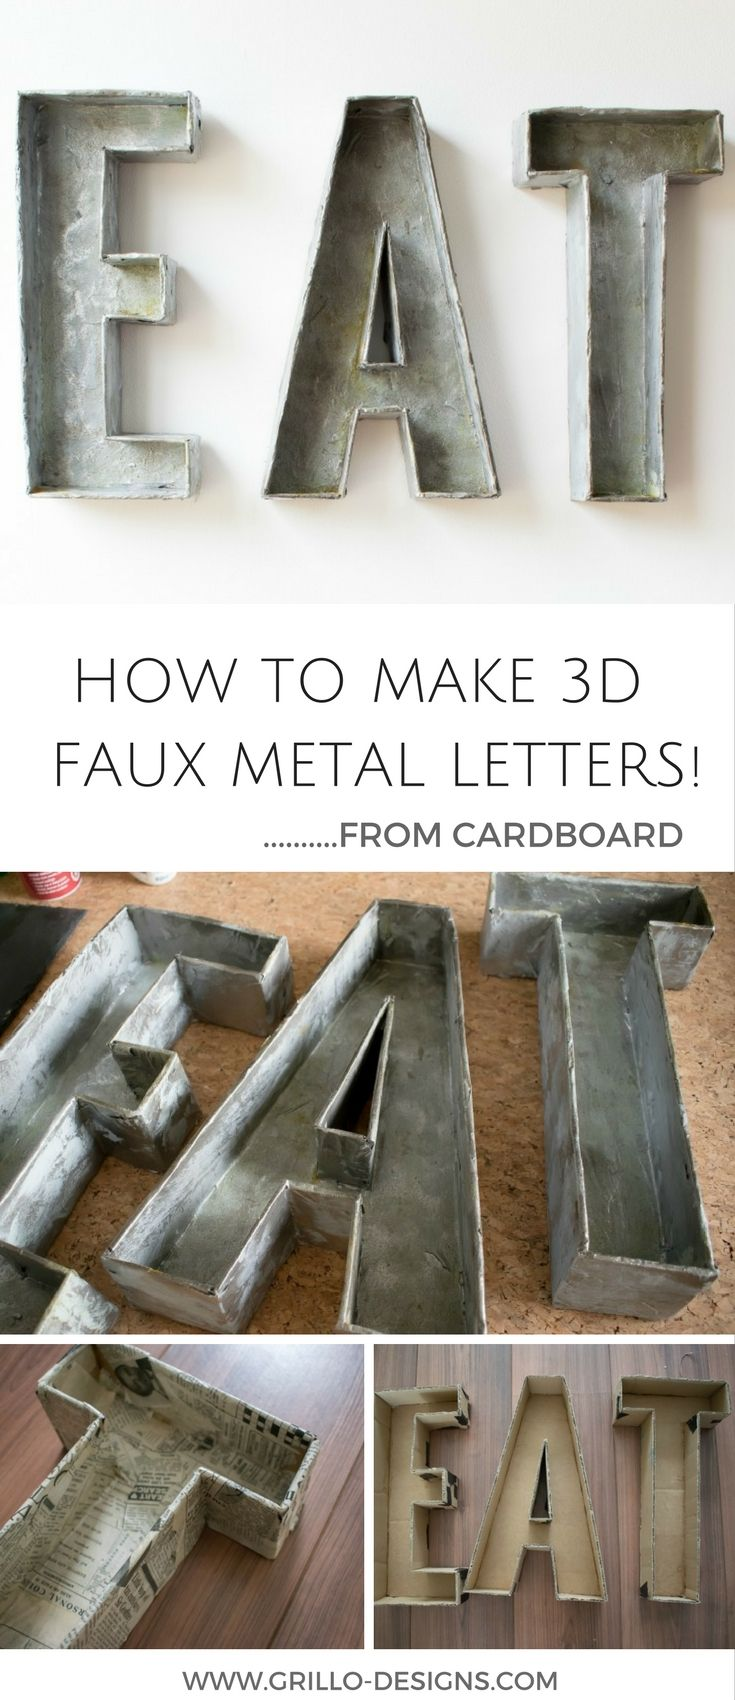 Metal Craft Letters How To Make 3D Faux Metal Letters  From Cardboard  Industrial